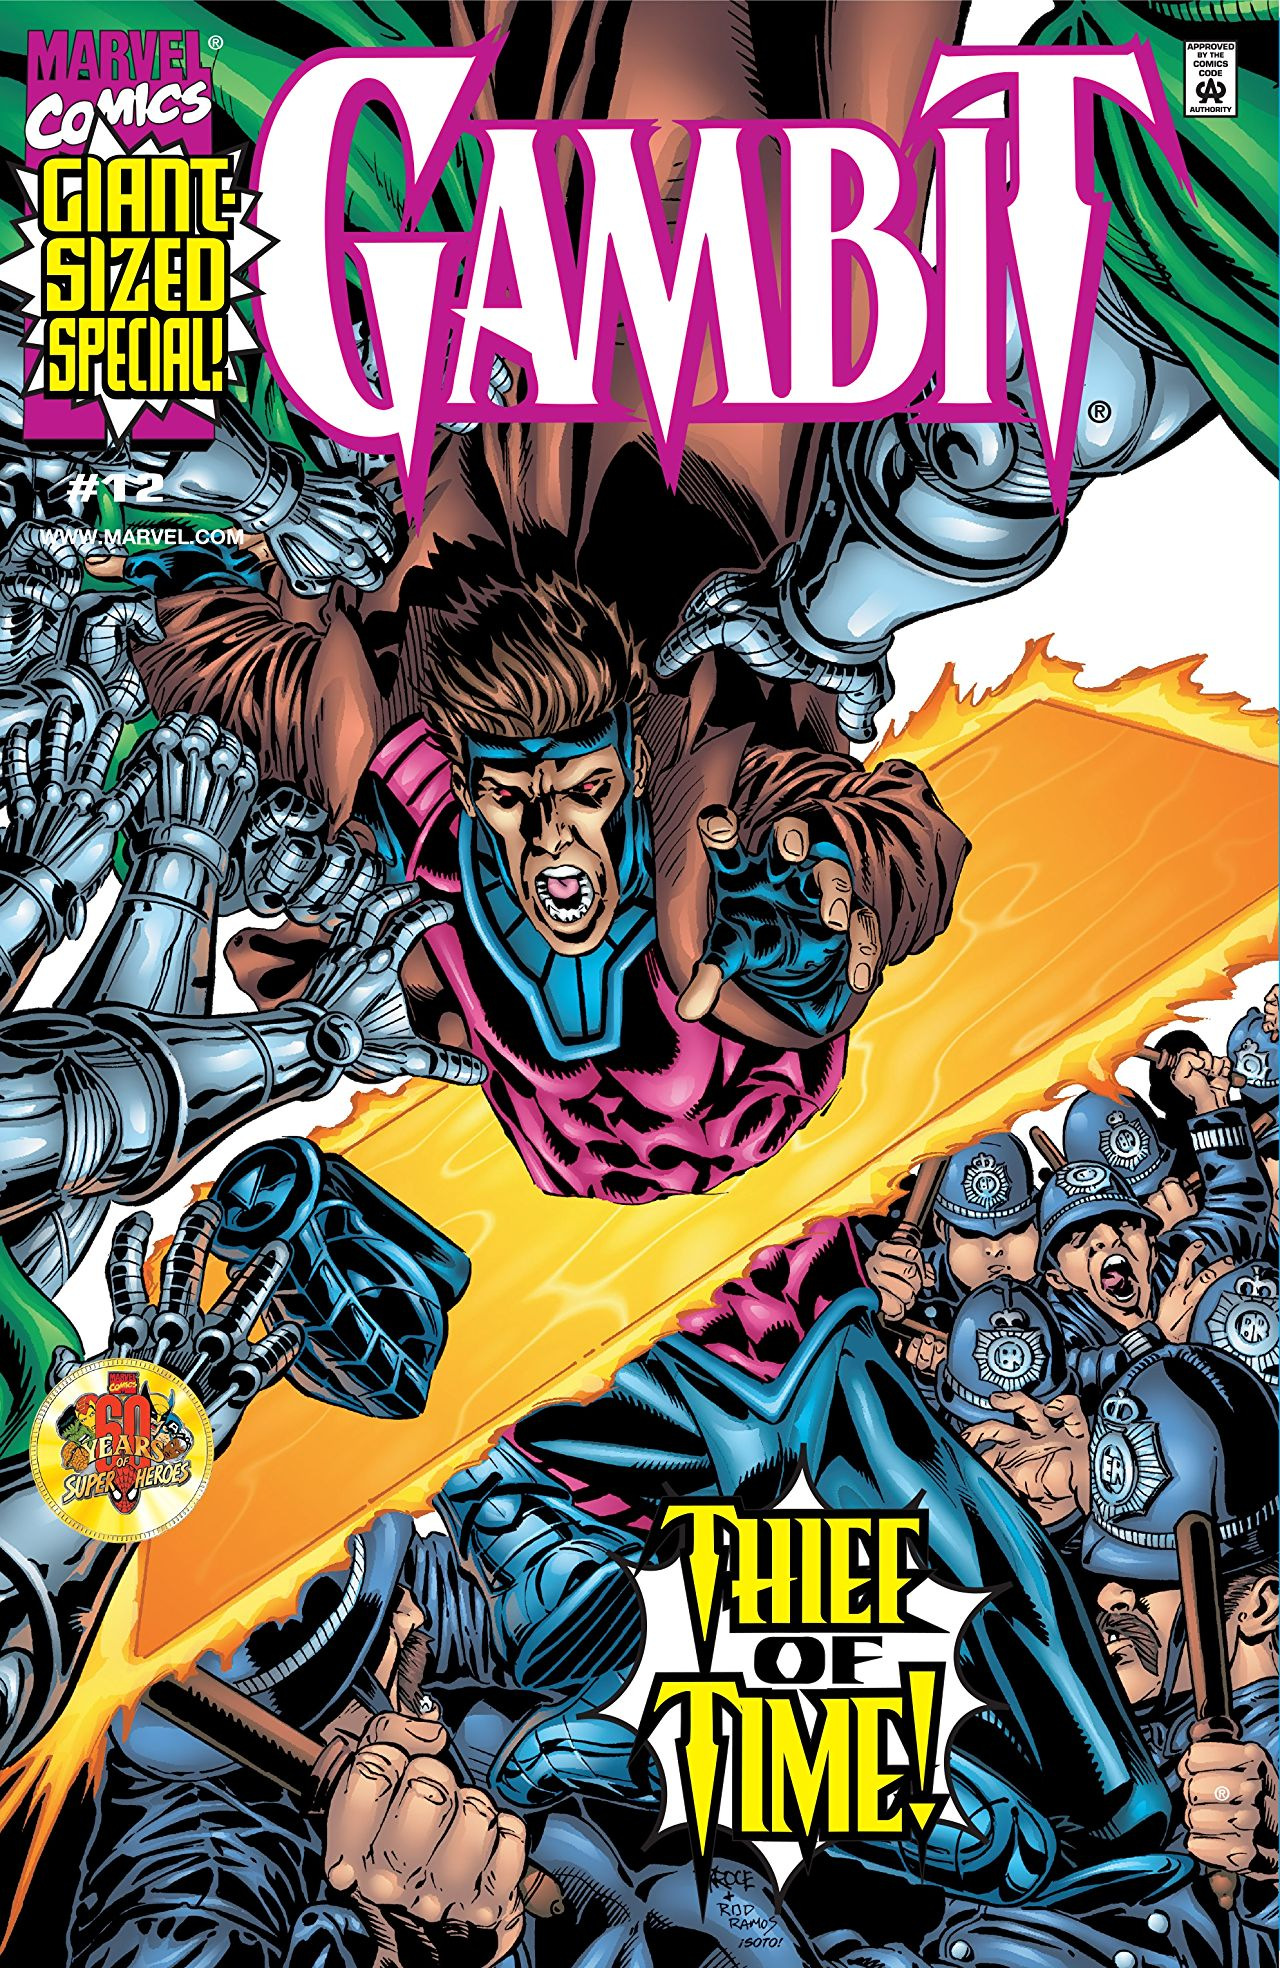 Retro Recap: 'X-Men: Gambit Complete Vol. 2' -- What you need to know